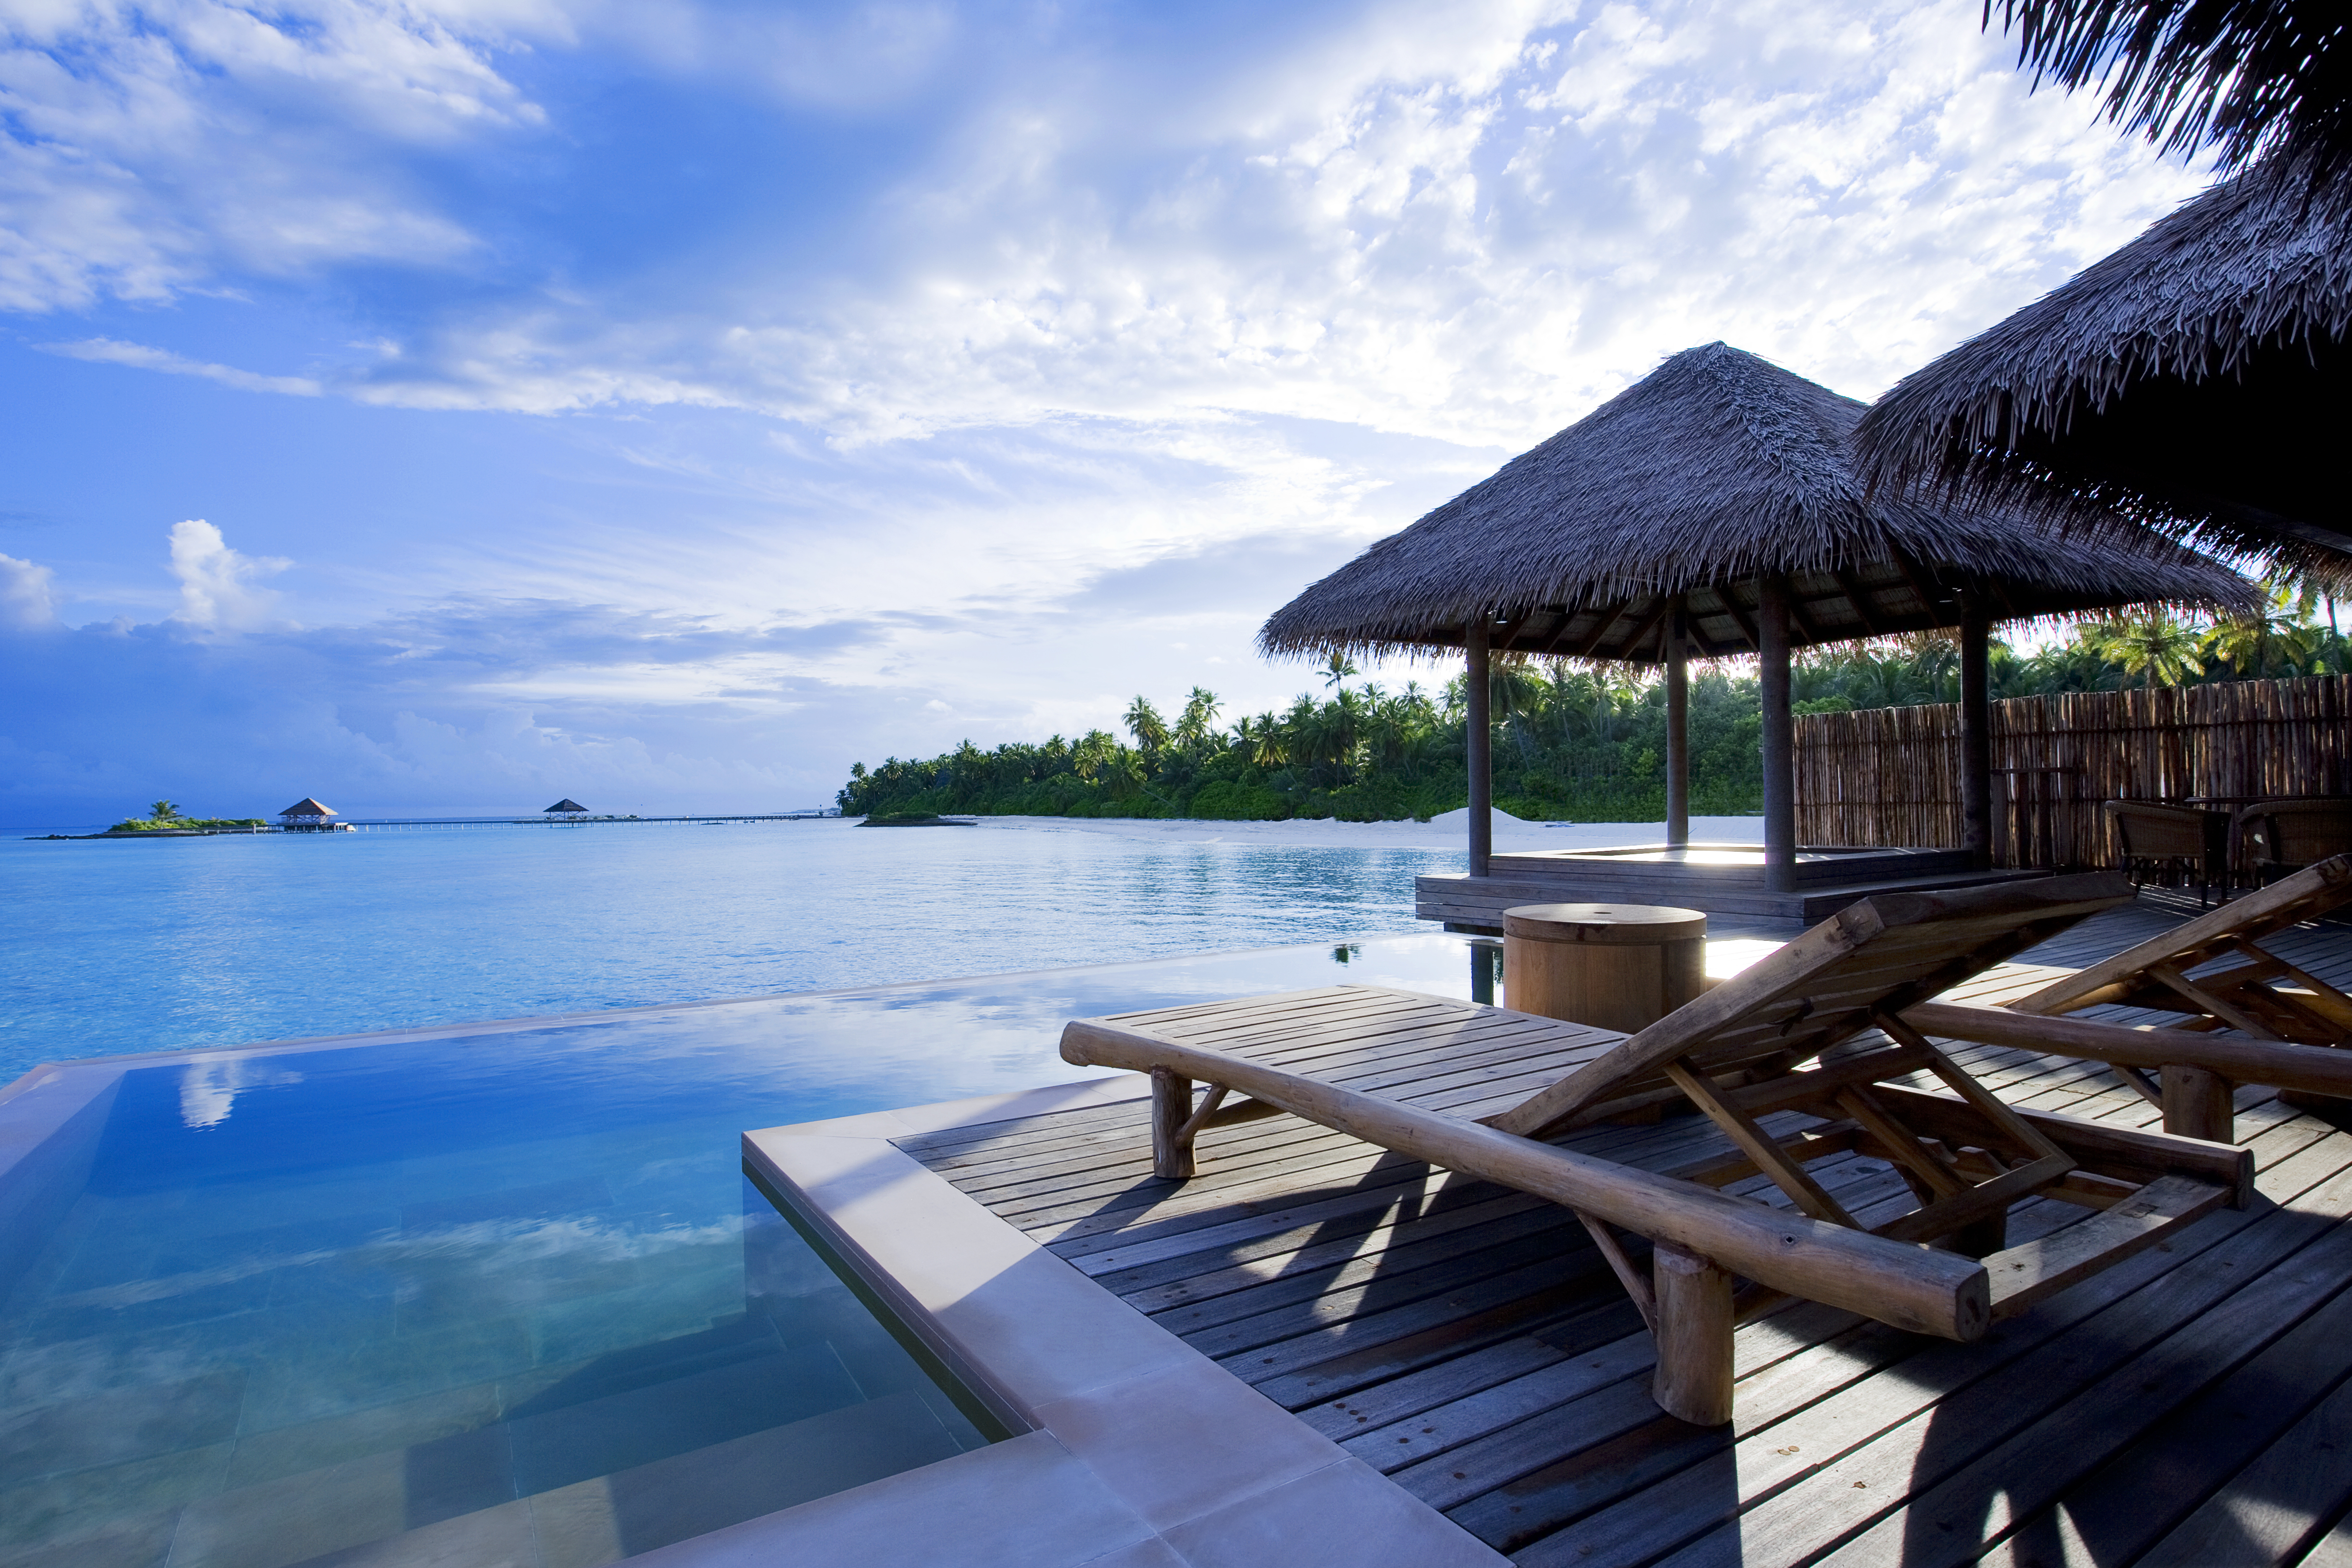 Unique Retreats: An Overwater Bungalow On A Private Island In Belize